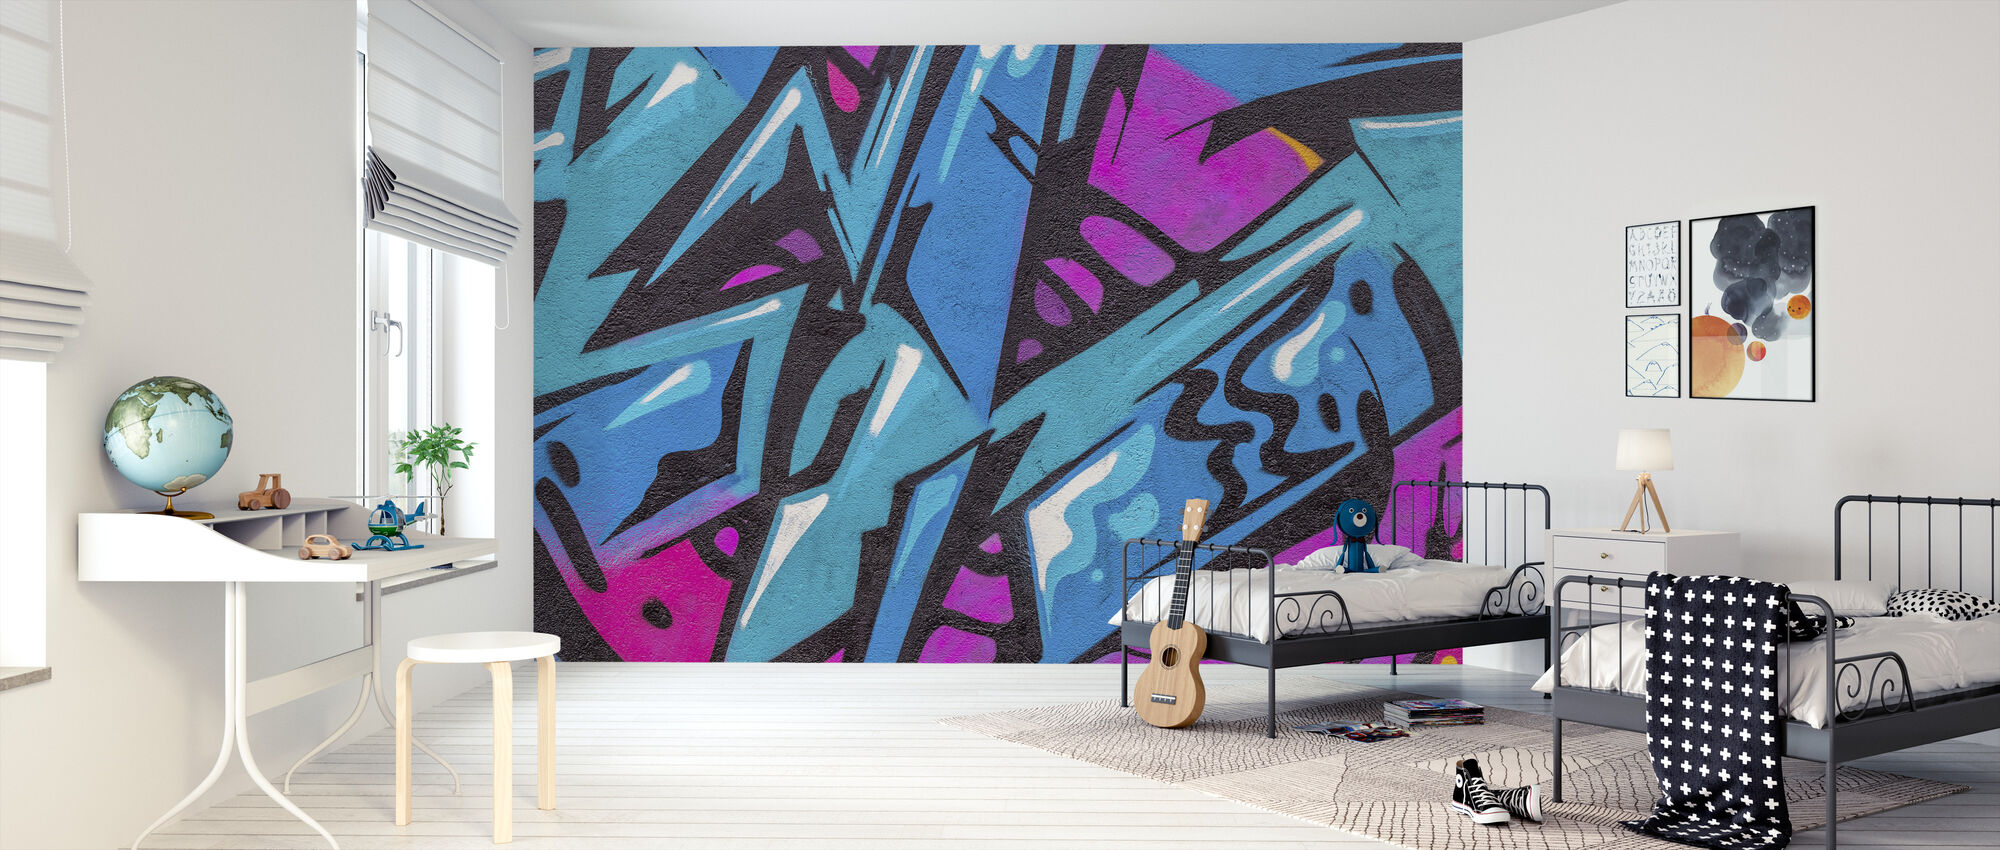 Fashion Color Graffiti - Wallpaper - Kids Room